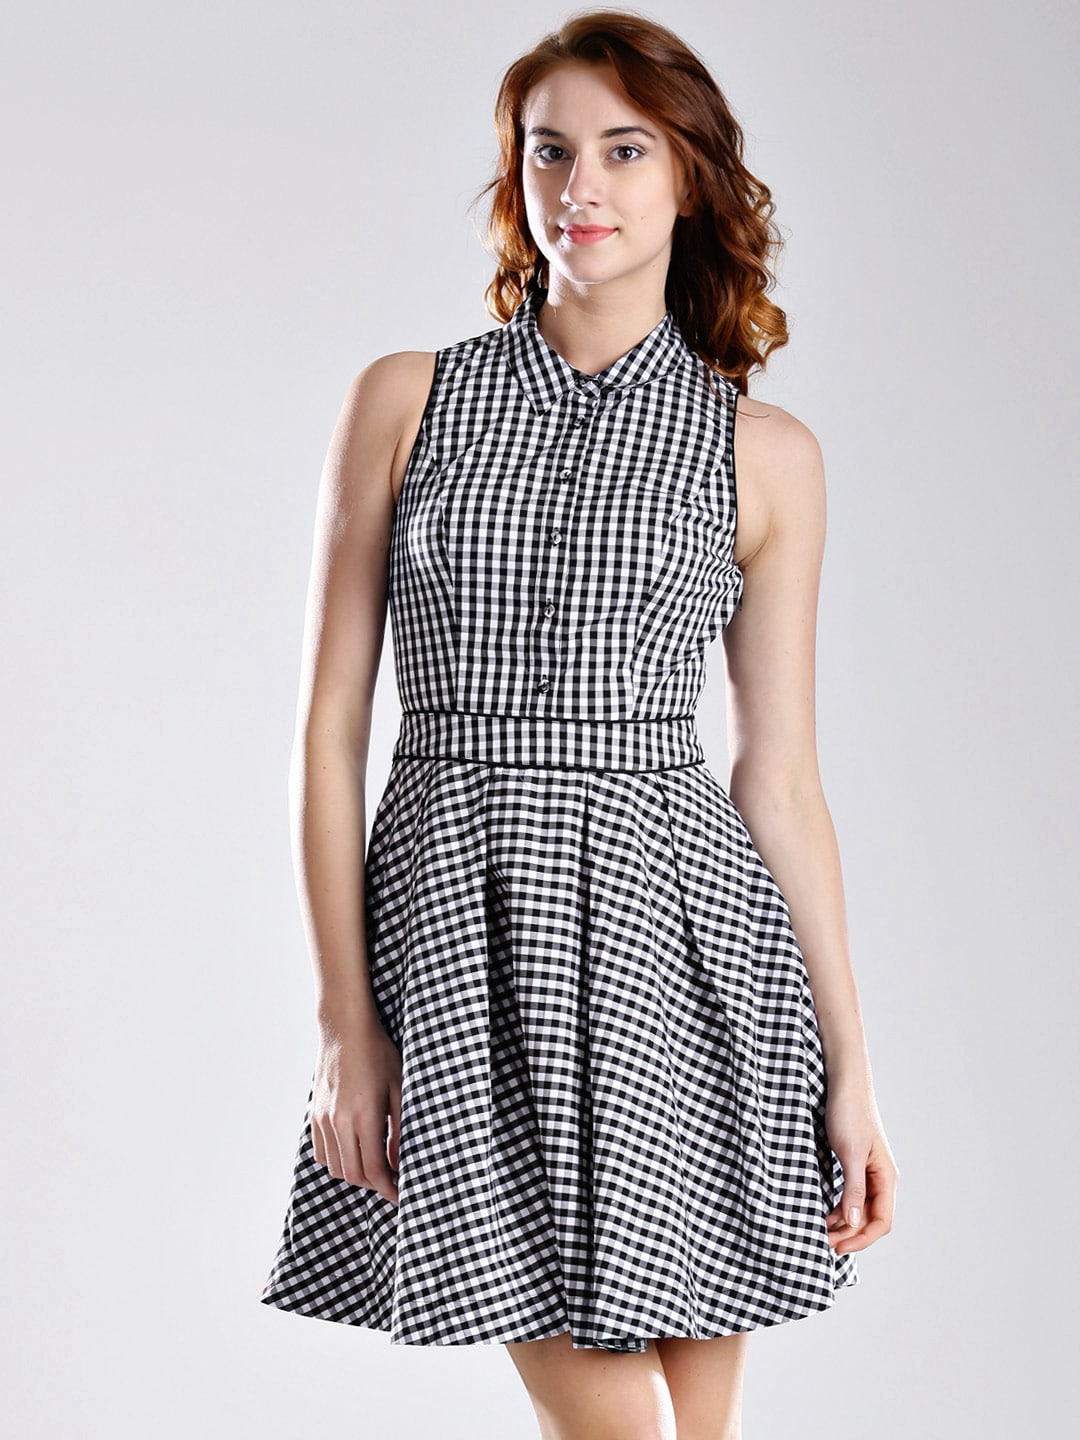 GUESS Black & White Checked Fit & Flare Dress